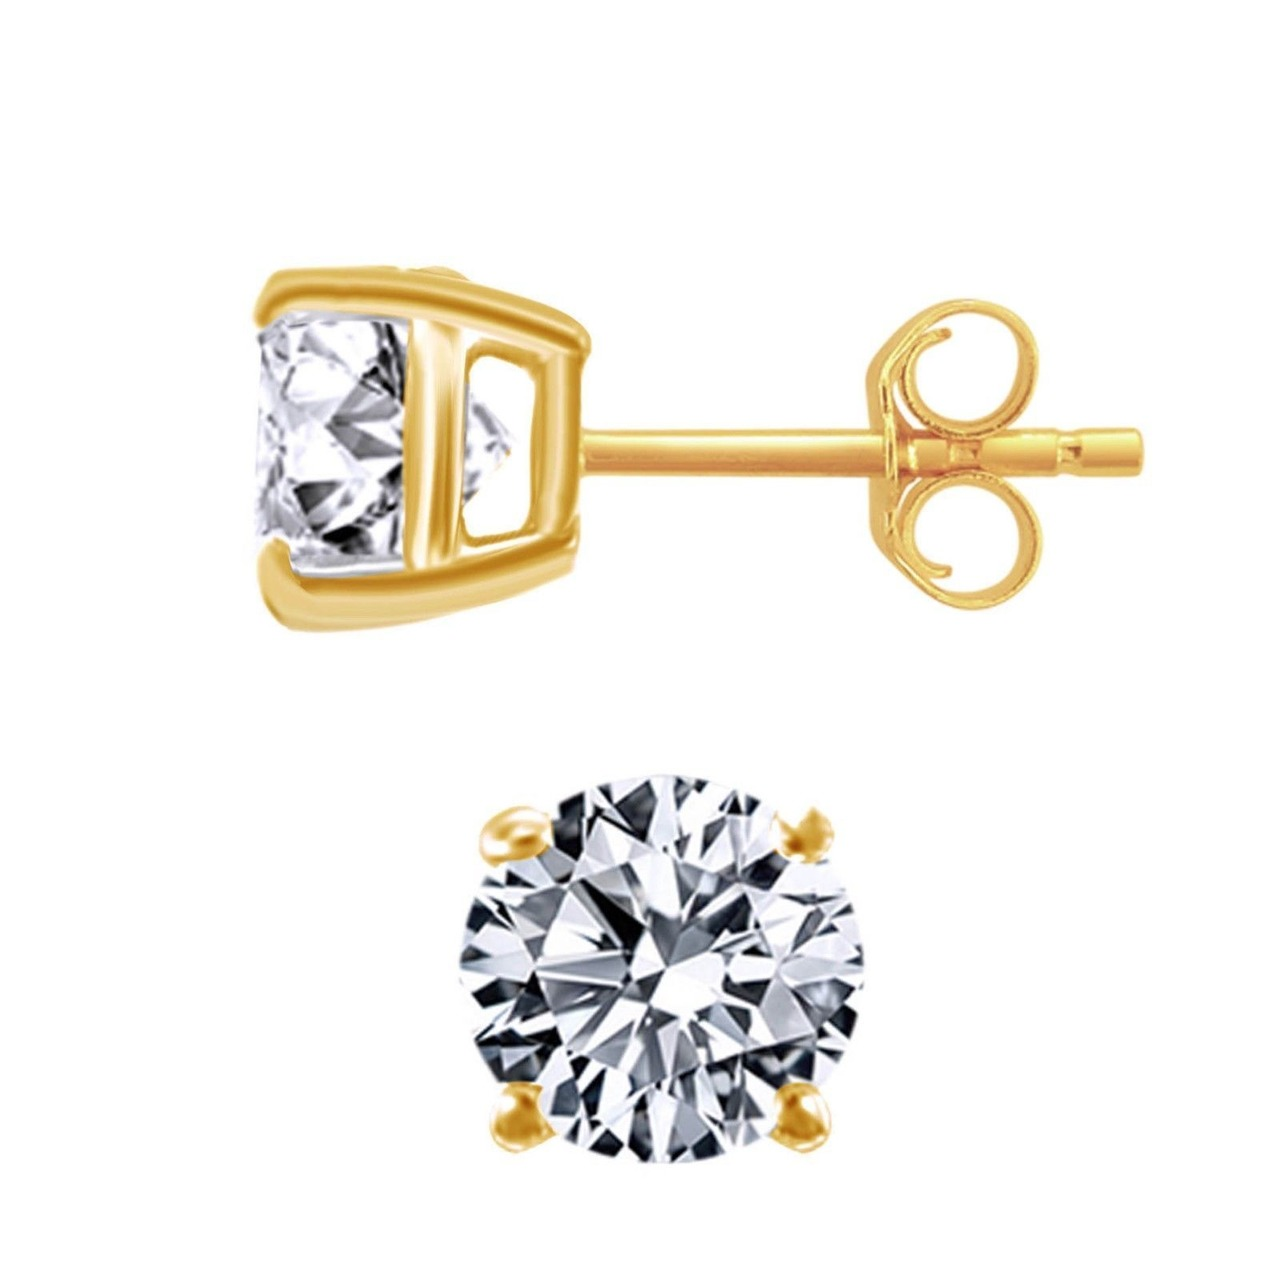 Round CZ Stud Earrings - 14k Yellow Gold Plated Sterling Silver 925 - 6mm pair of zircon gold plated stud earrings